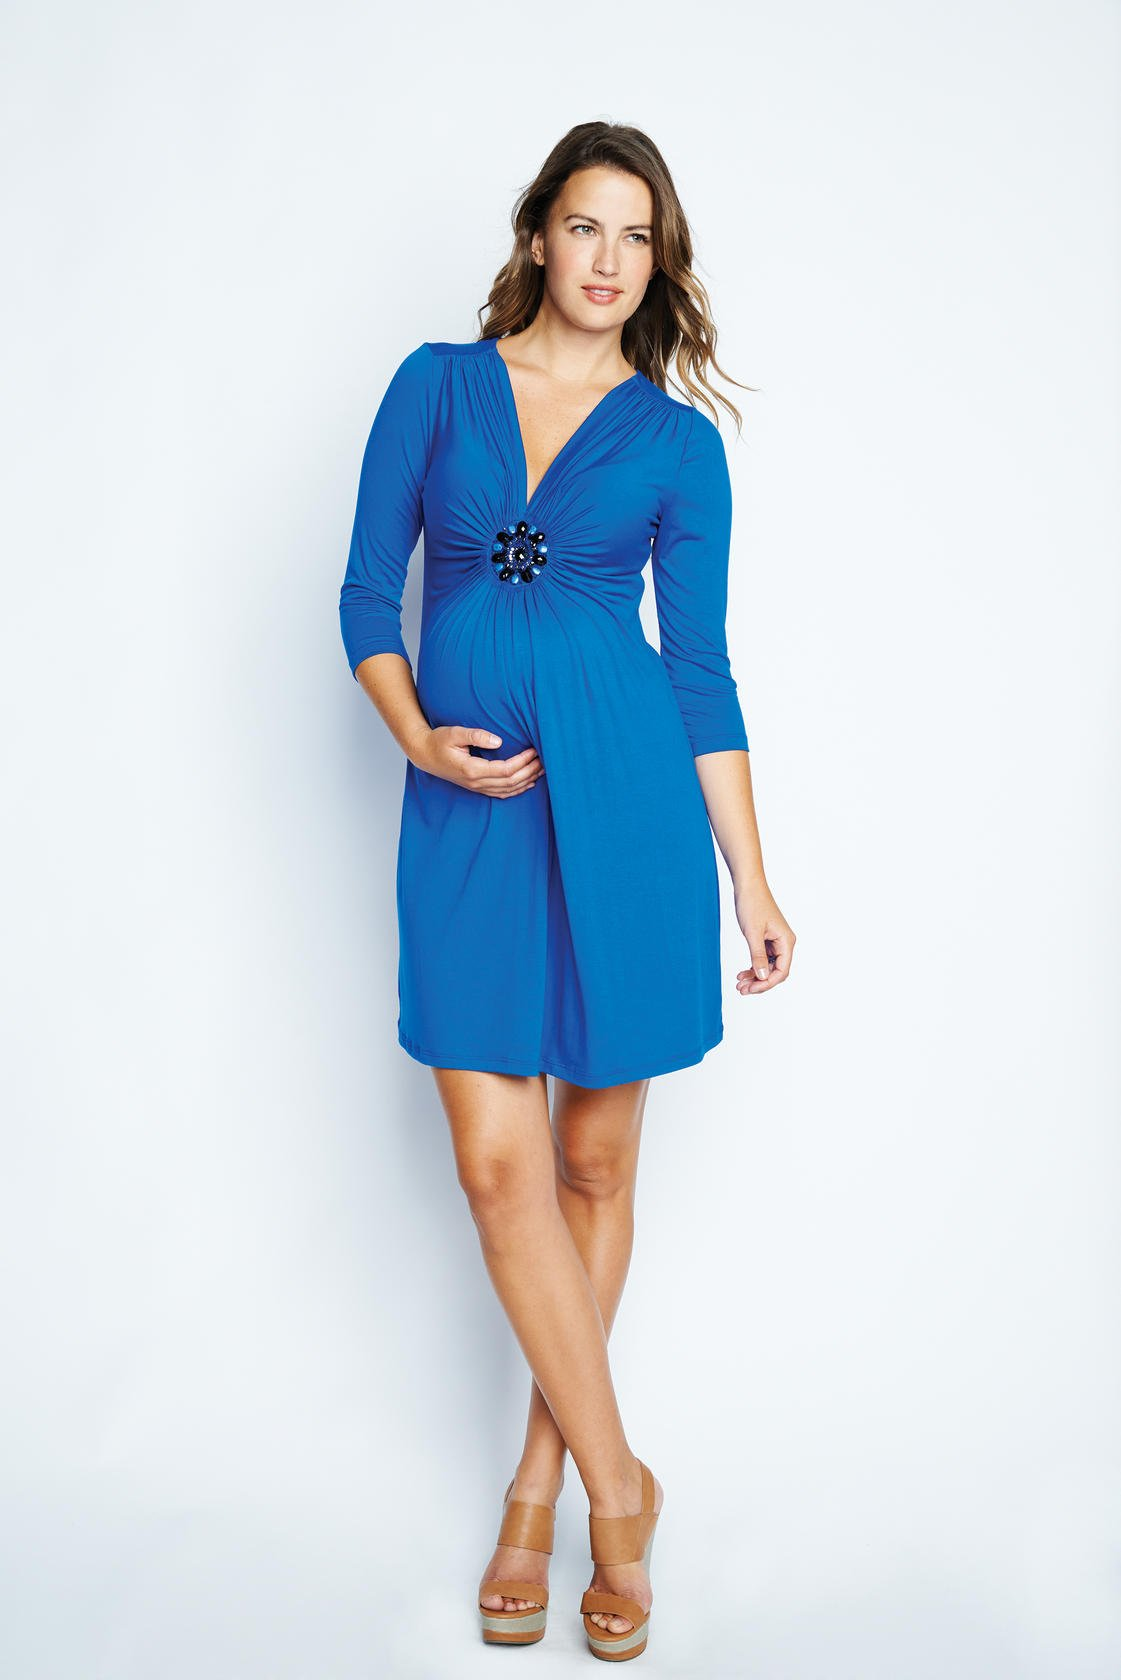 Expectant mums arent the only ones buying modern maternity wear at ombrellifo Image collections